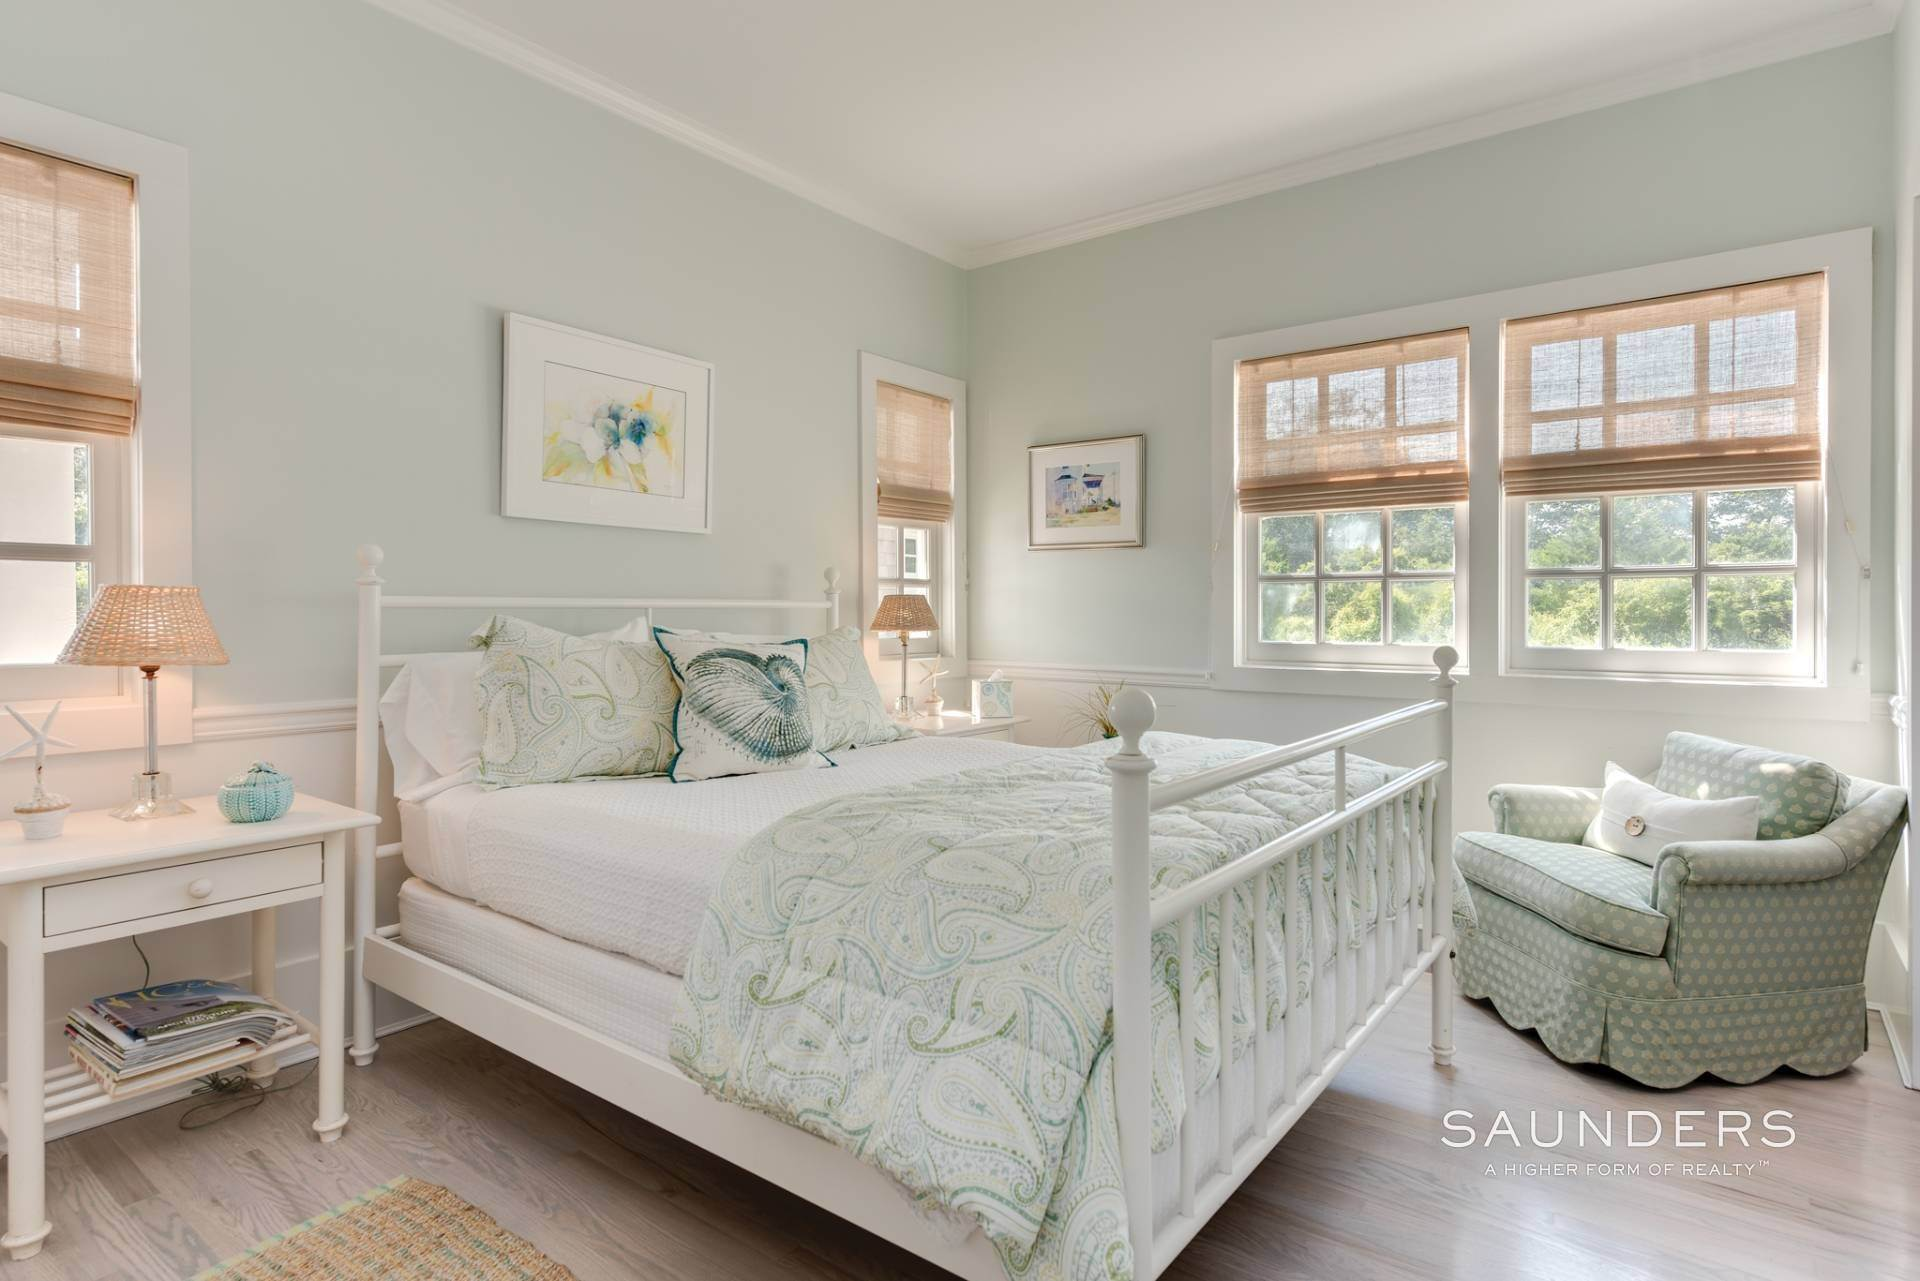 14. Single Family Homes for Sale at Bridgehampton South Waterfront With Dock & Ocean View 87 Rose Way, Bridgehampton, Southampton Town, NY 11932